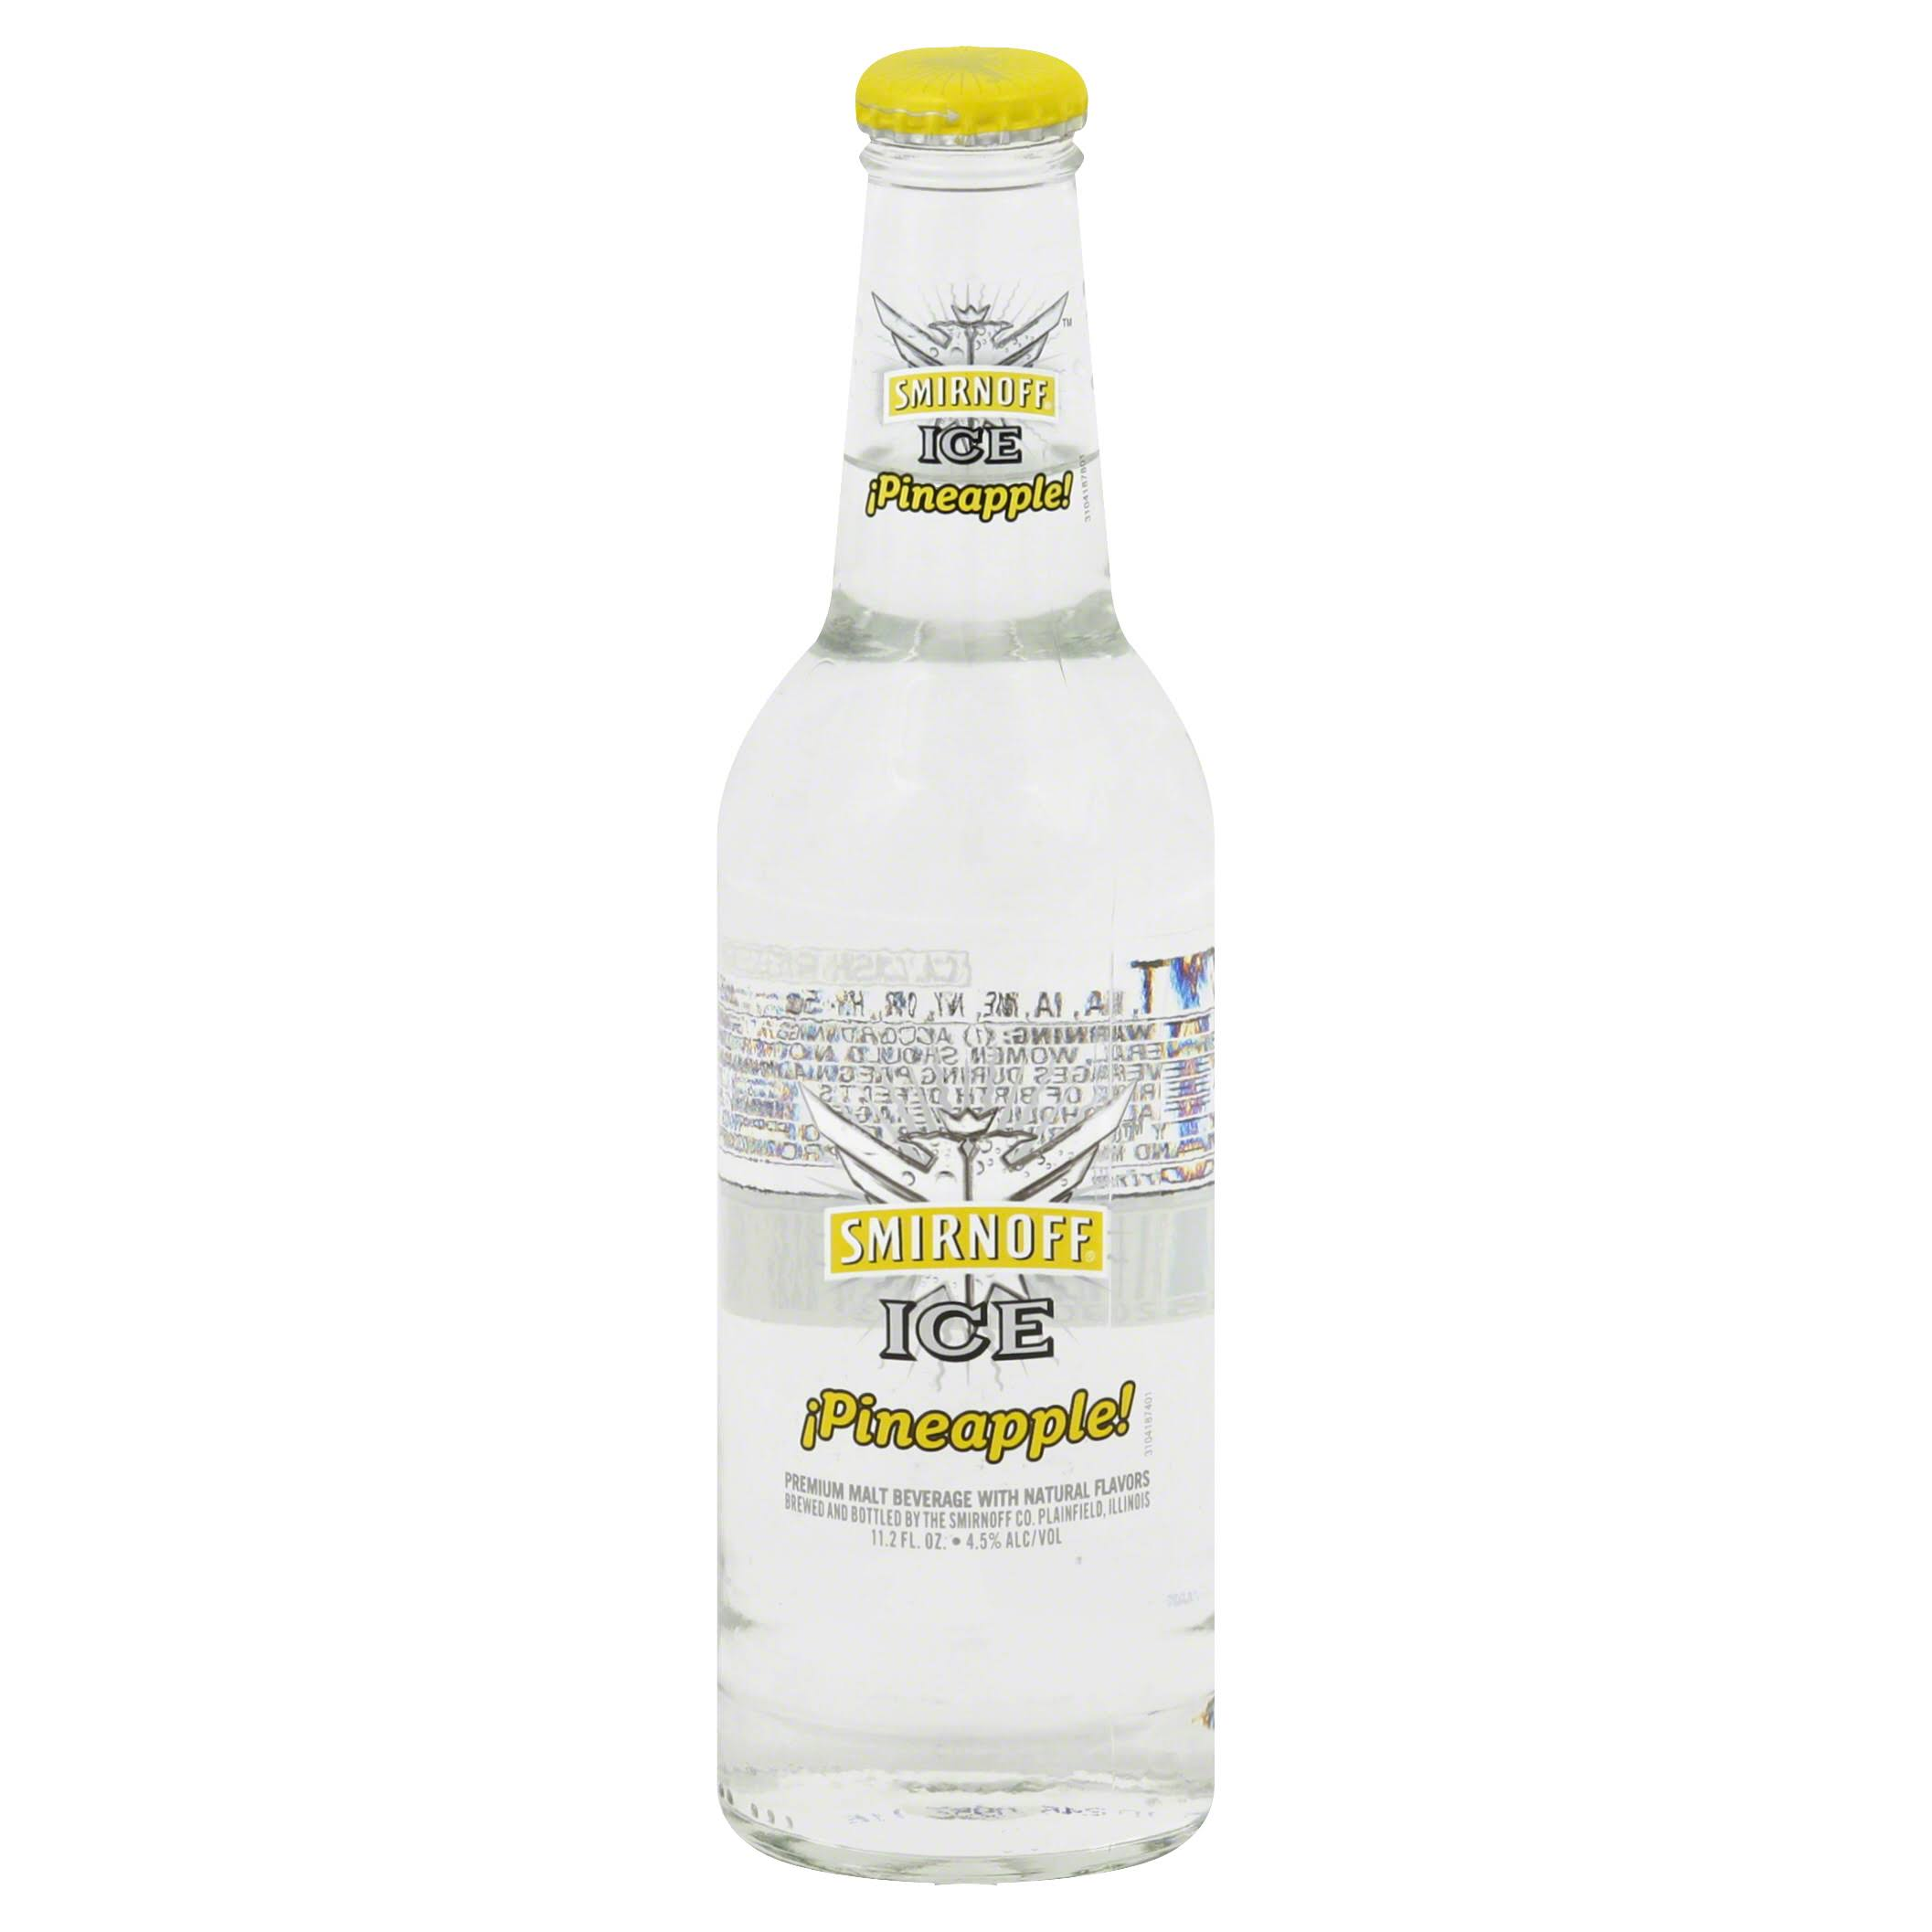 Smirnoff Ice Malt Beverage, Premium, Pineapple - 11.2 fl oz